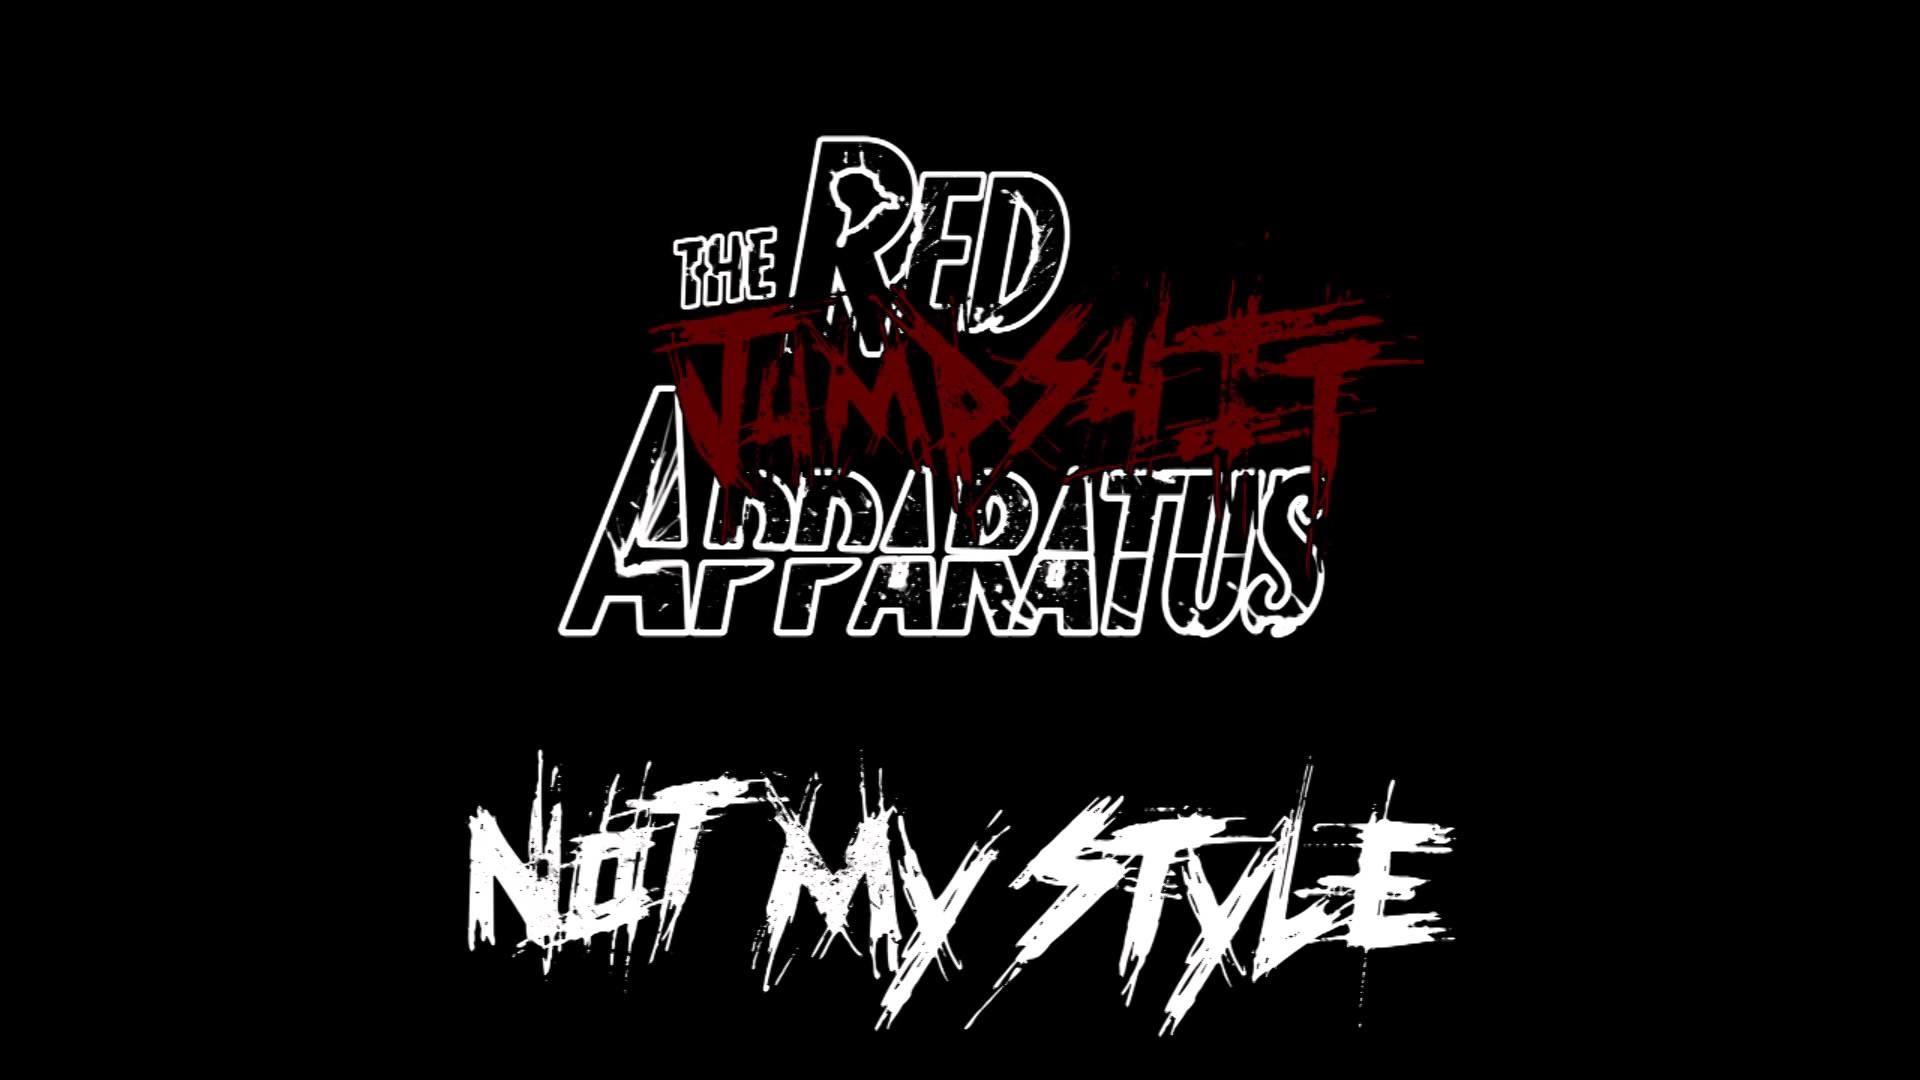 The red jumpsuit apparatus am i the enemy full album download.